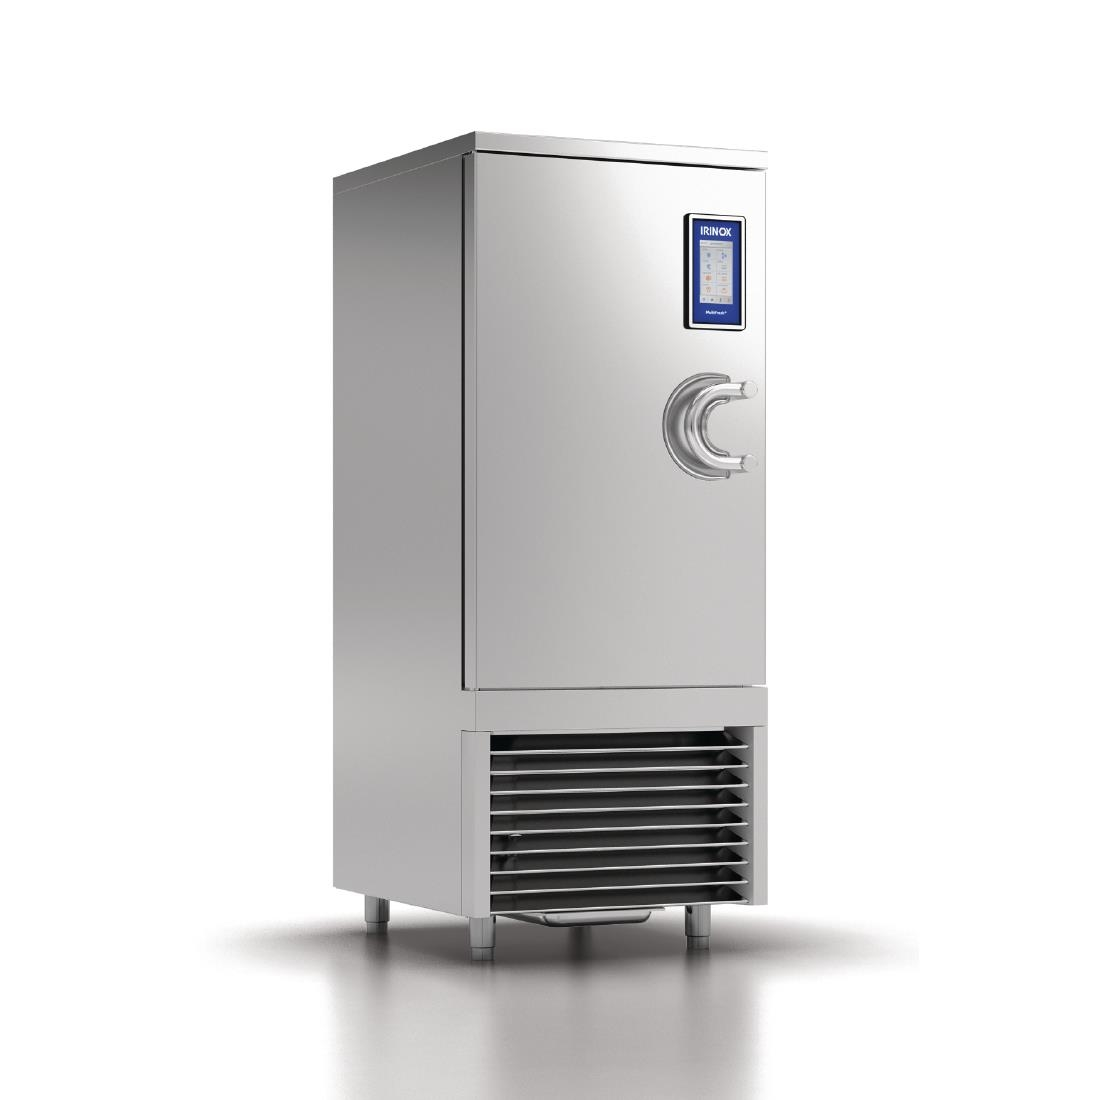 Irinox MultiFresh 70kg Hot/Cold Multifunction Cabinet MF 70.1